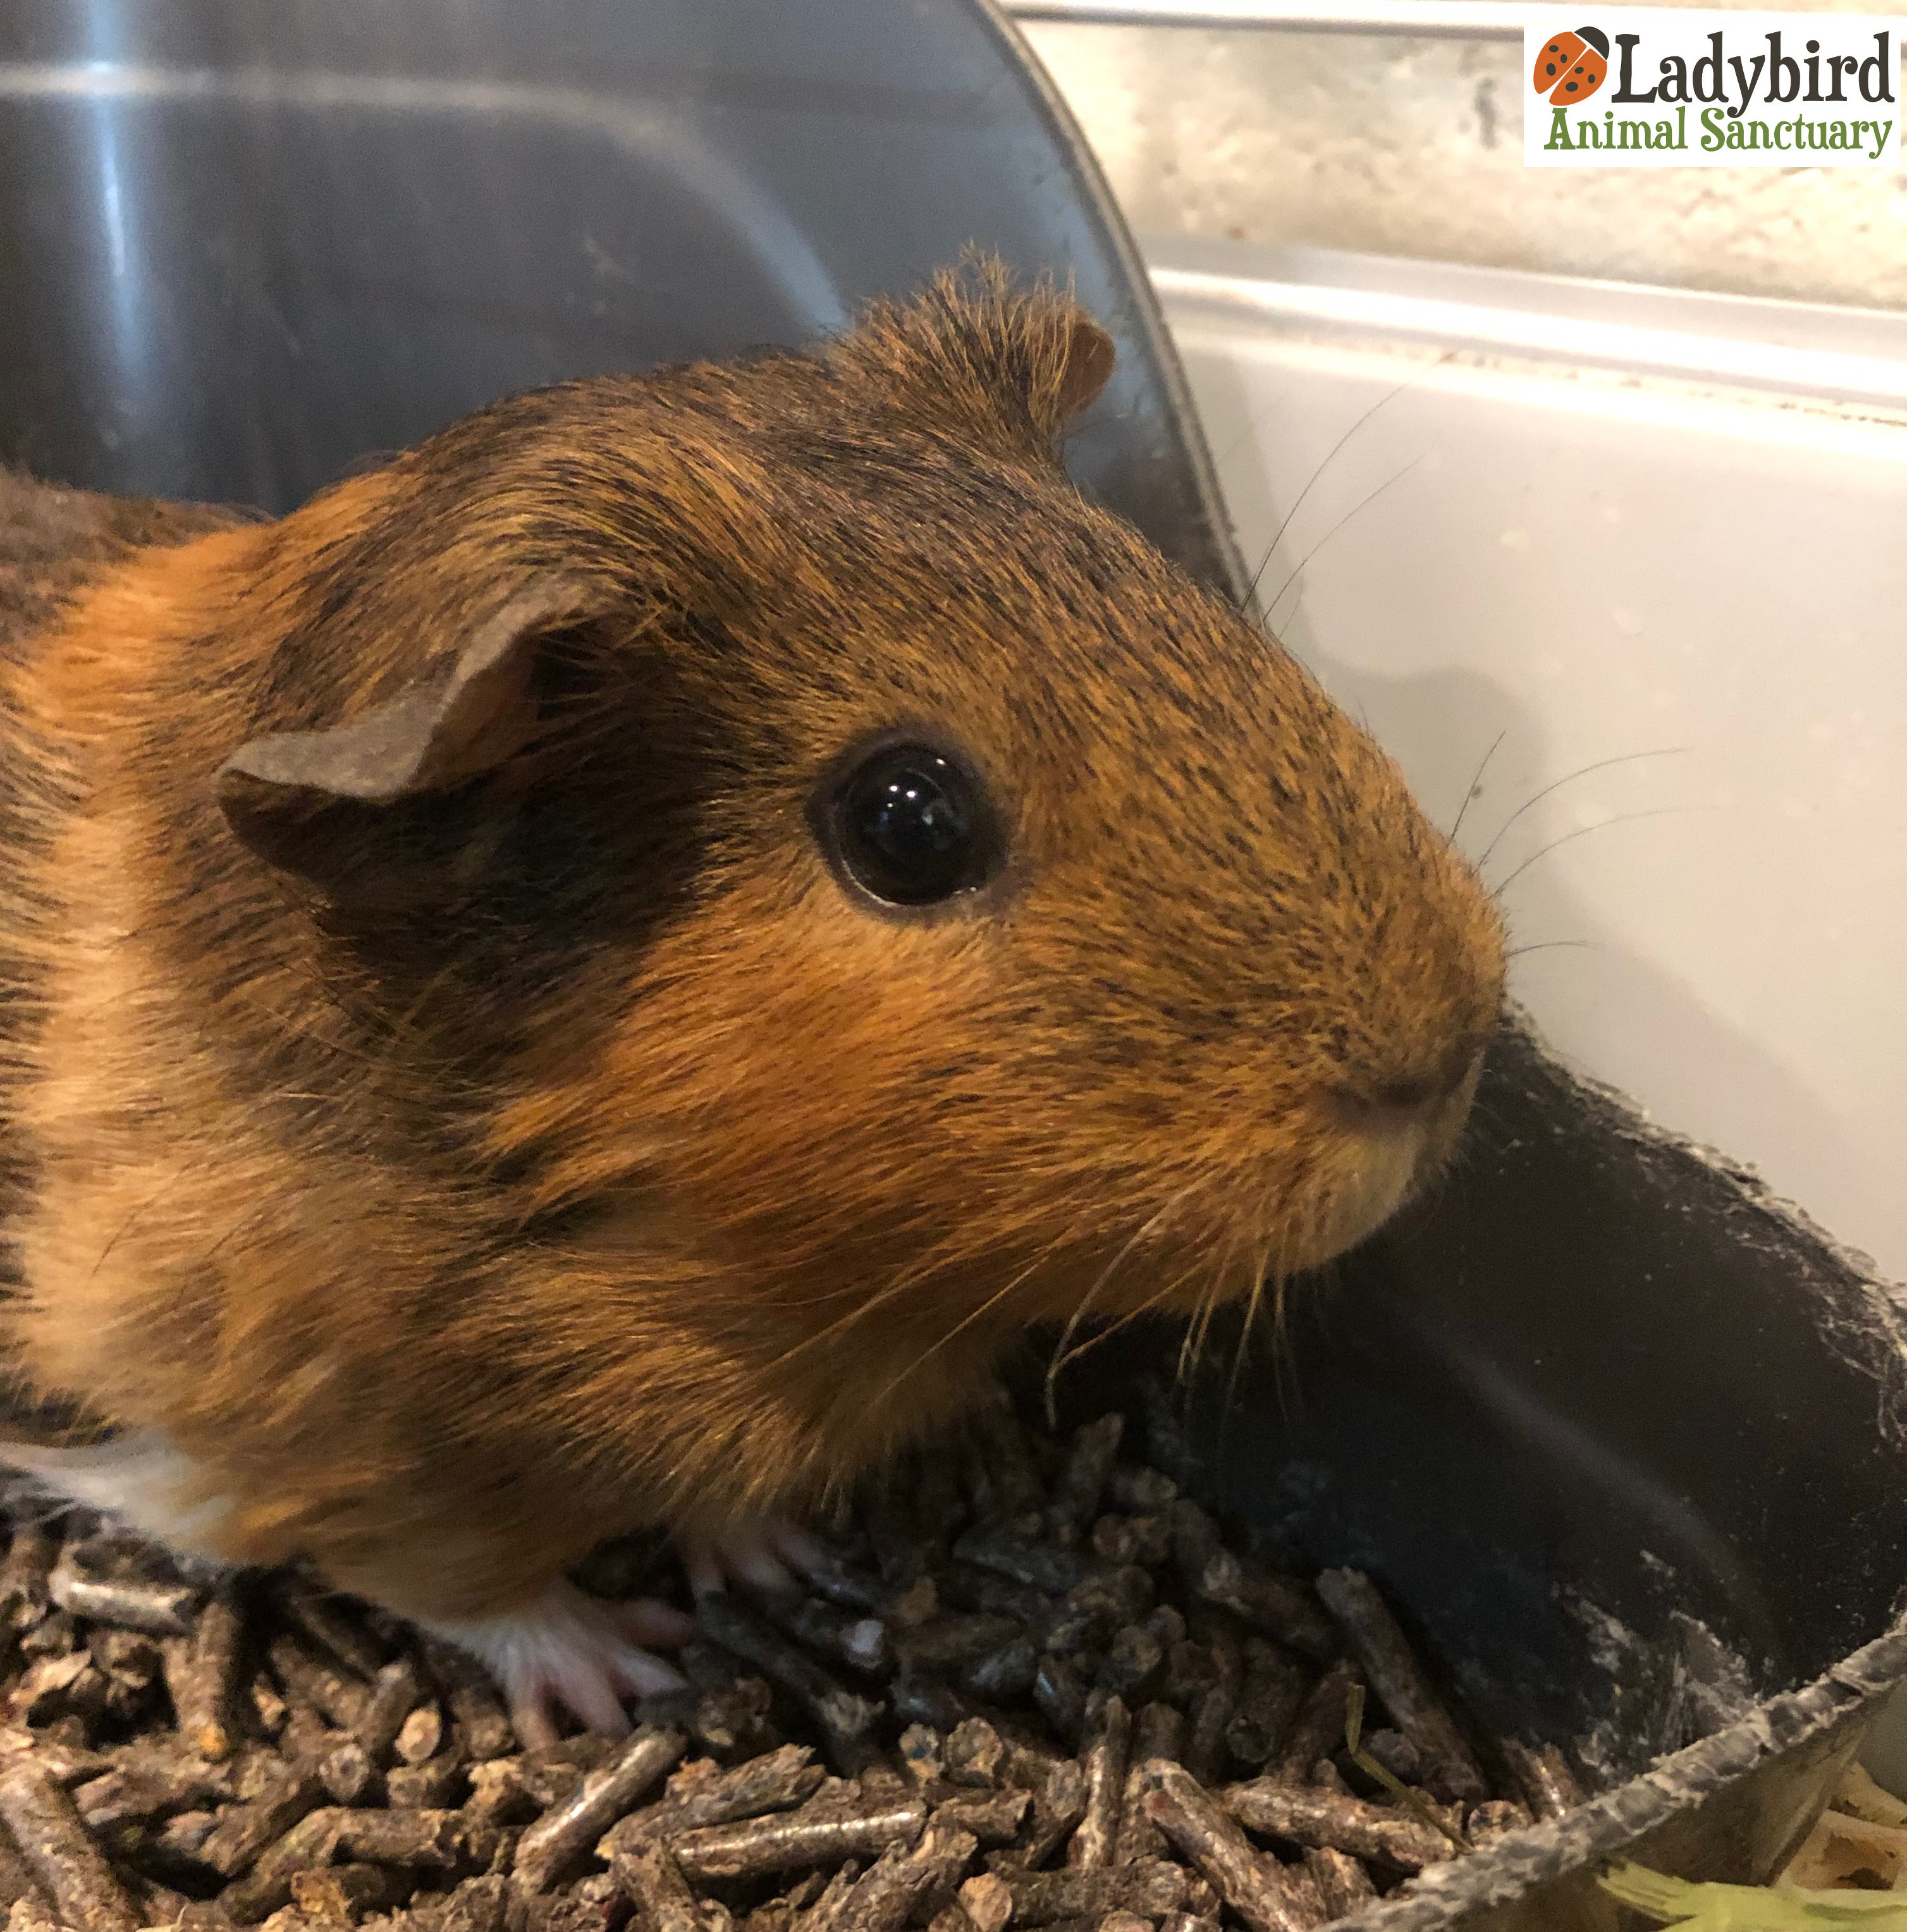 473f8f0f STATUS: Available Soon AGE AT ARRIVAL: Approximately 8 months old ARRIVAL  DATE: April 17th, 2019 SPECIES: Guinea pig BREED: GENDER: Female NOTES: